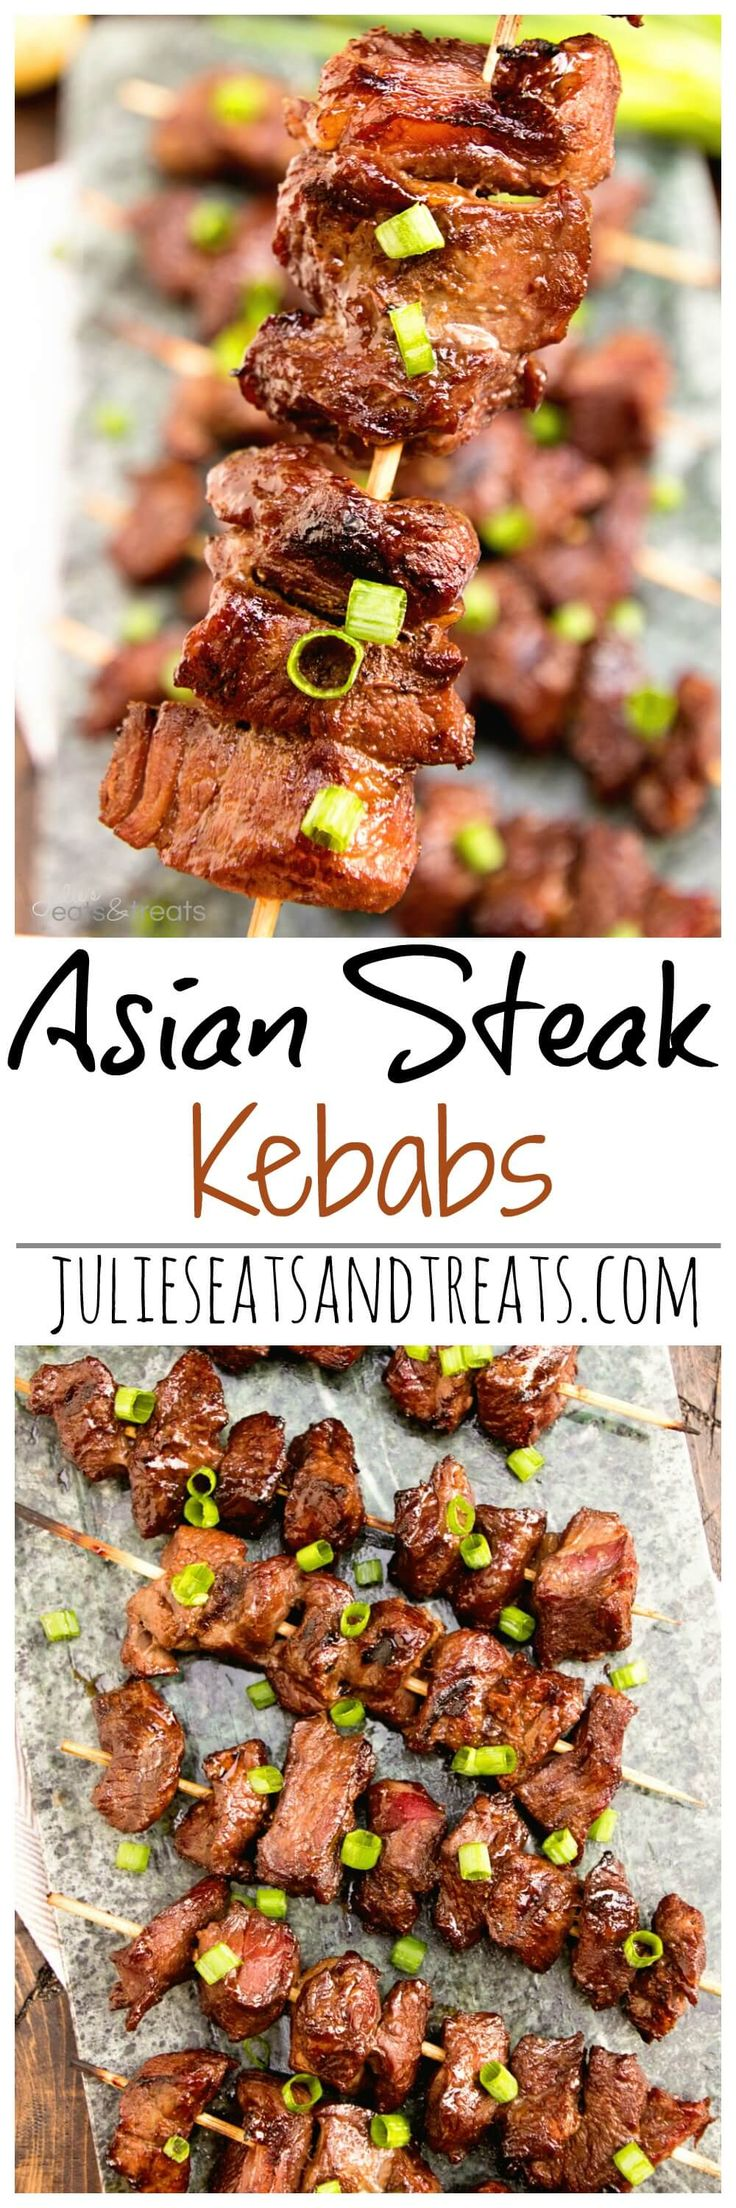 Asian Steak Kebabs ~ Tender, Juicy Steak Bites in a Delicious Asian Marinade! The Perfect Quick & Easy Recipe to Fire Up the Grill With! ~ http://www.julieseatsandtreats.com